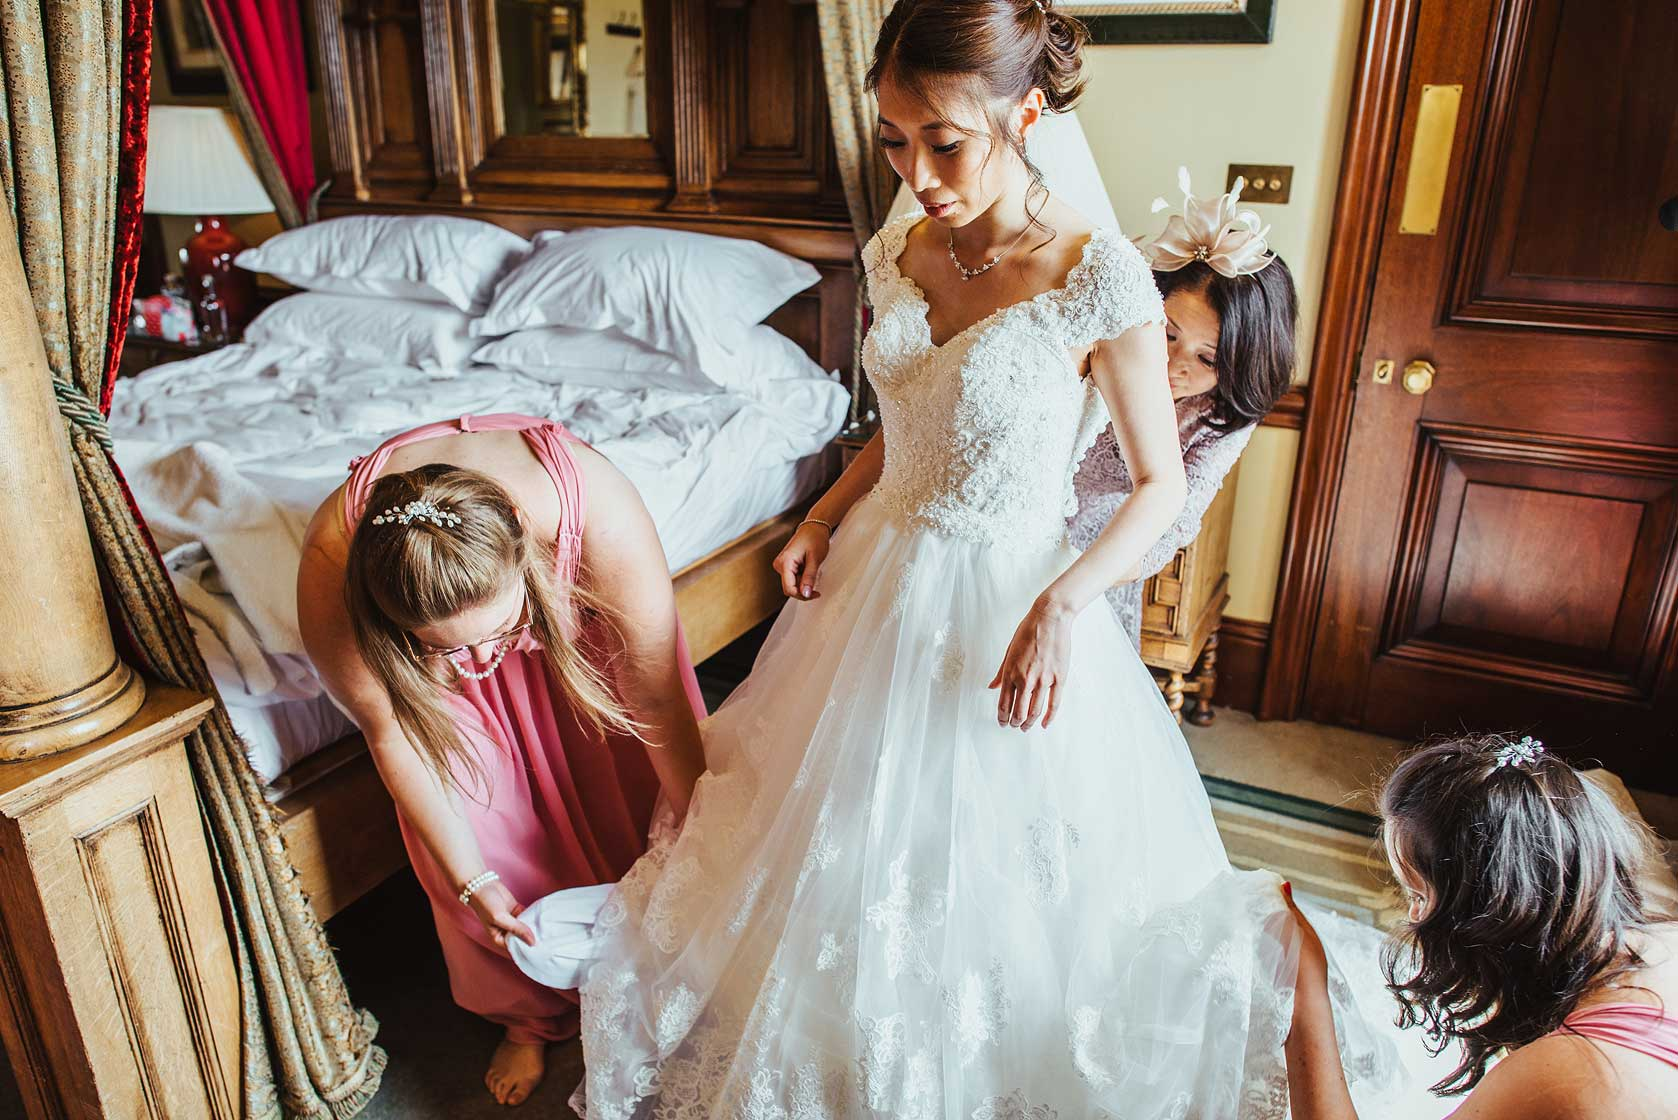 A bride is fitted into her wedding dress at Stoke Park